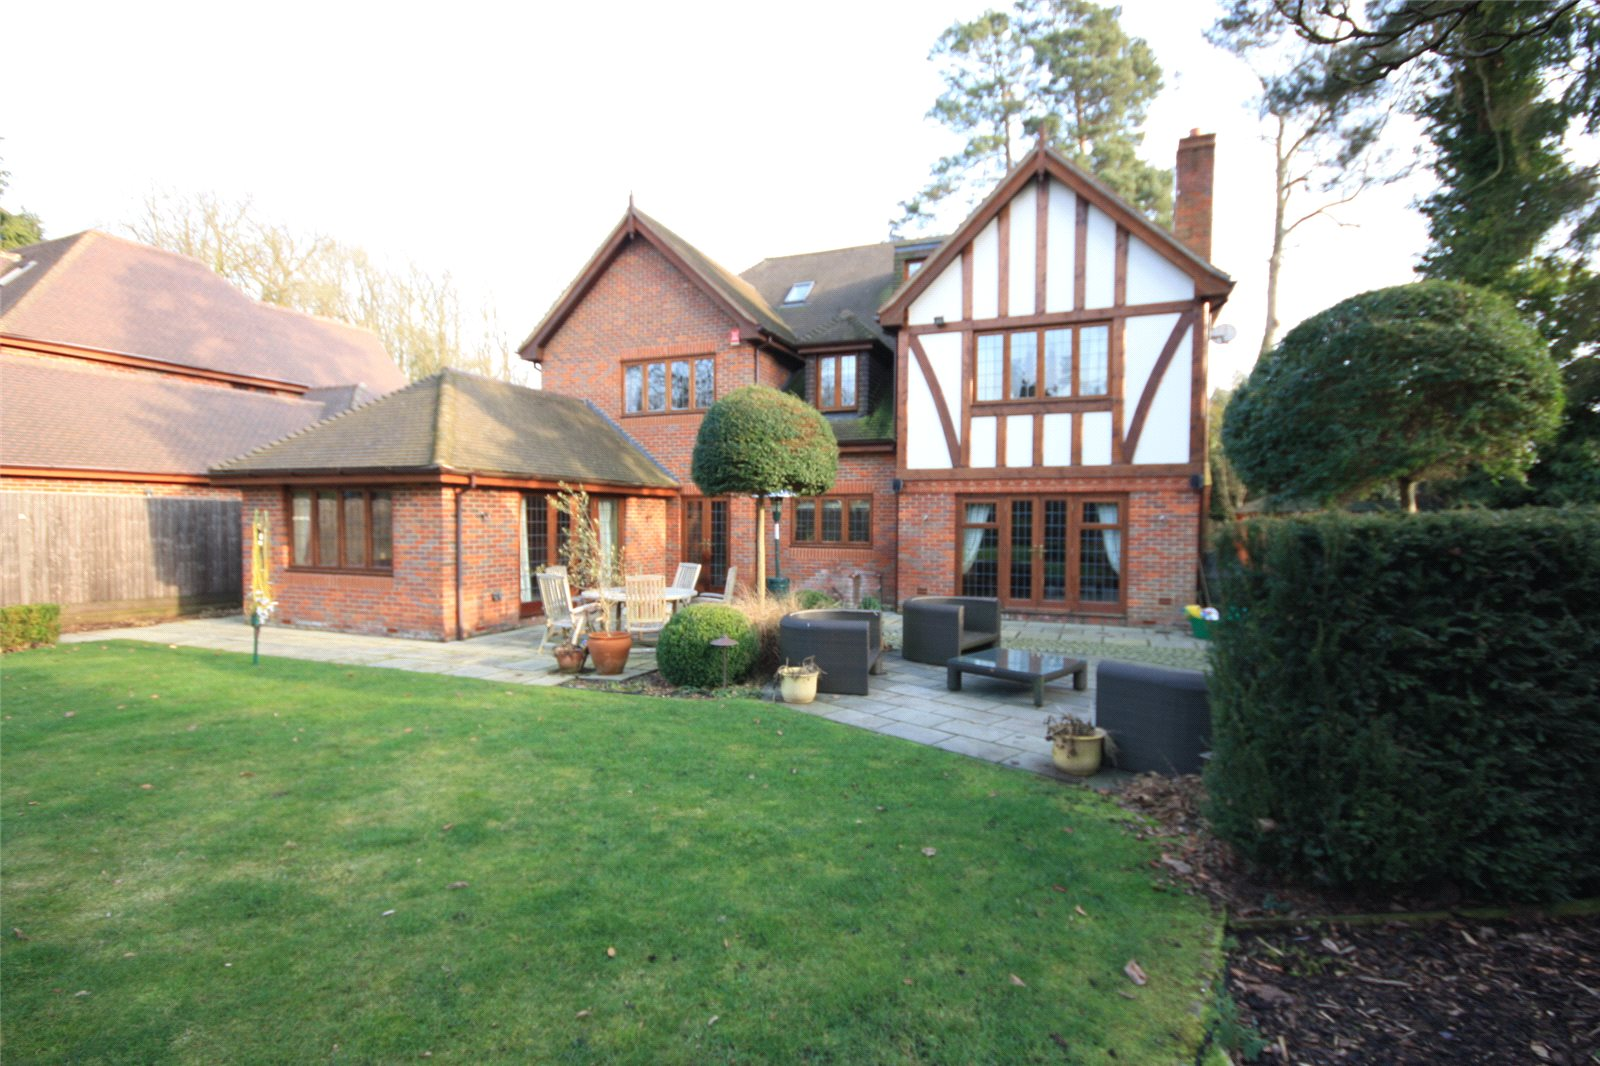 Additional photo for property listing at Deadhearn Lane, Chalfont St Giles, Buckinghamshire, HP8 Chalfont St Giles, England